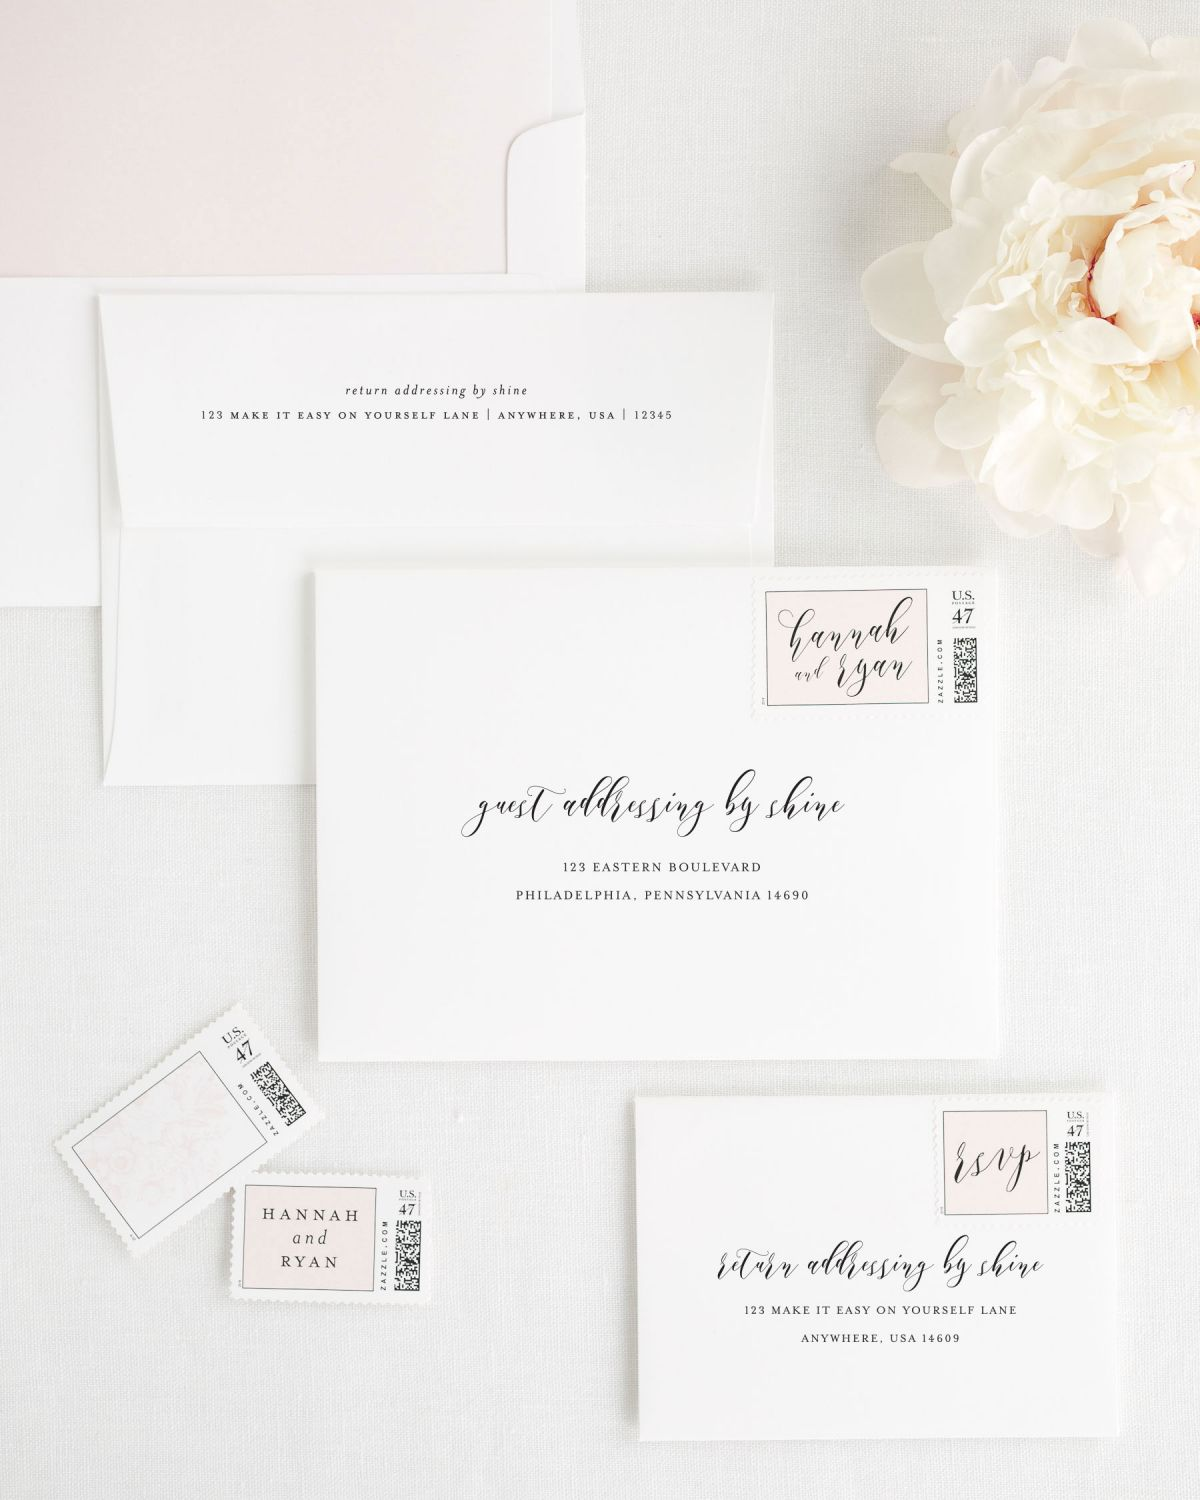 Wedding Invitation Envelopes with Guest Addressing and Personalized Postage